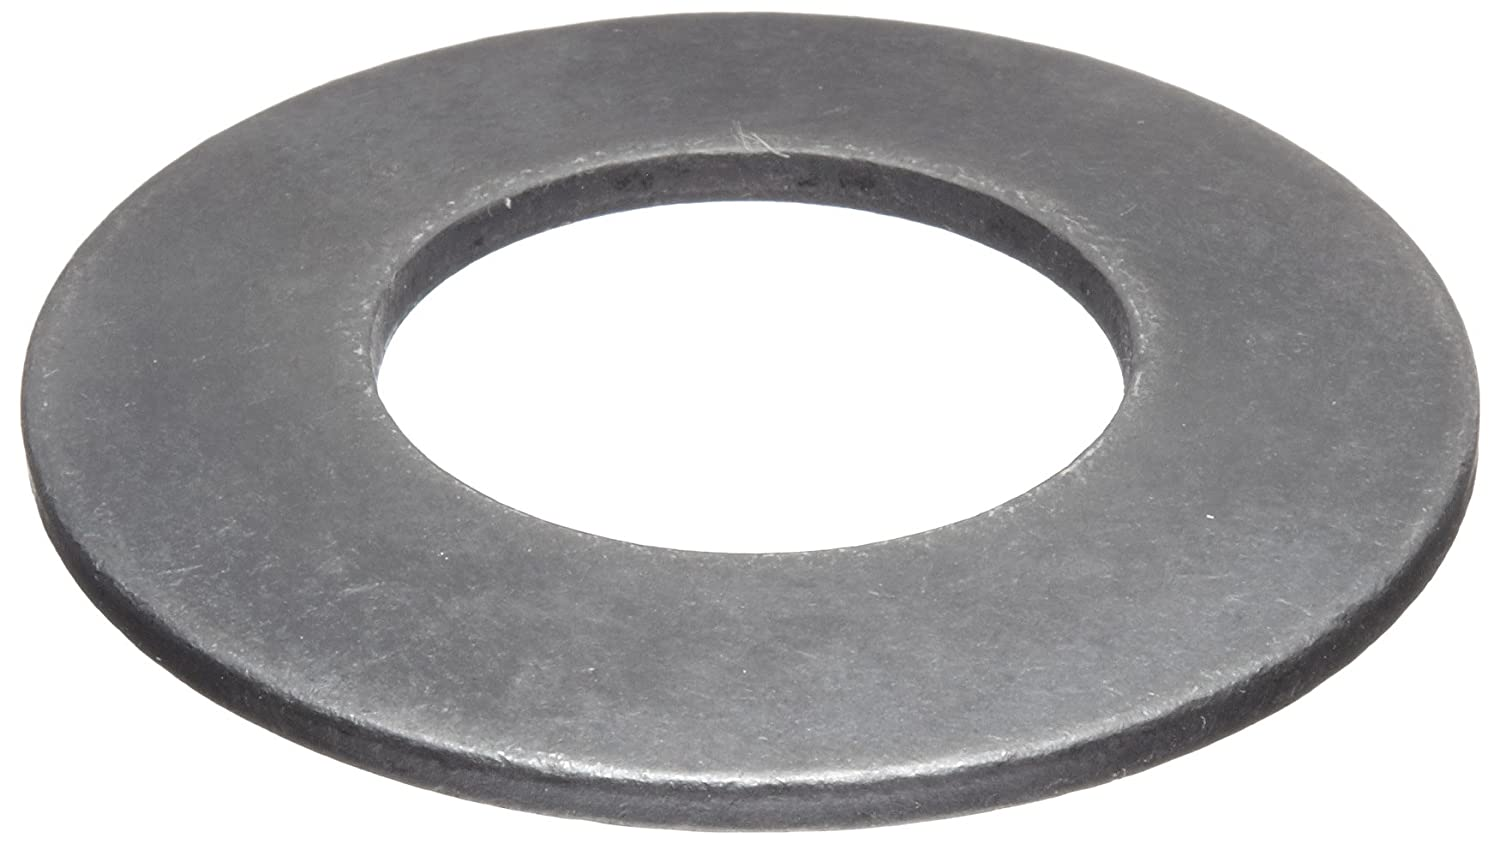 High Carbon Steel Belleville Spring Washers 1.25 inches Inner Diameter 3.75 inches Outside Diameter 0.251 inches Free Height 0.209 inches Compressed Height 2609 foot pounds Max. Load Pack of 10